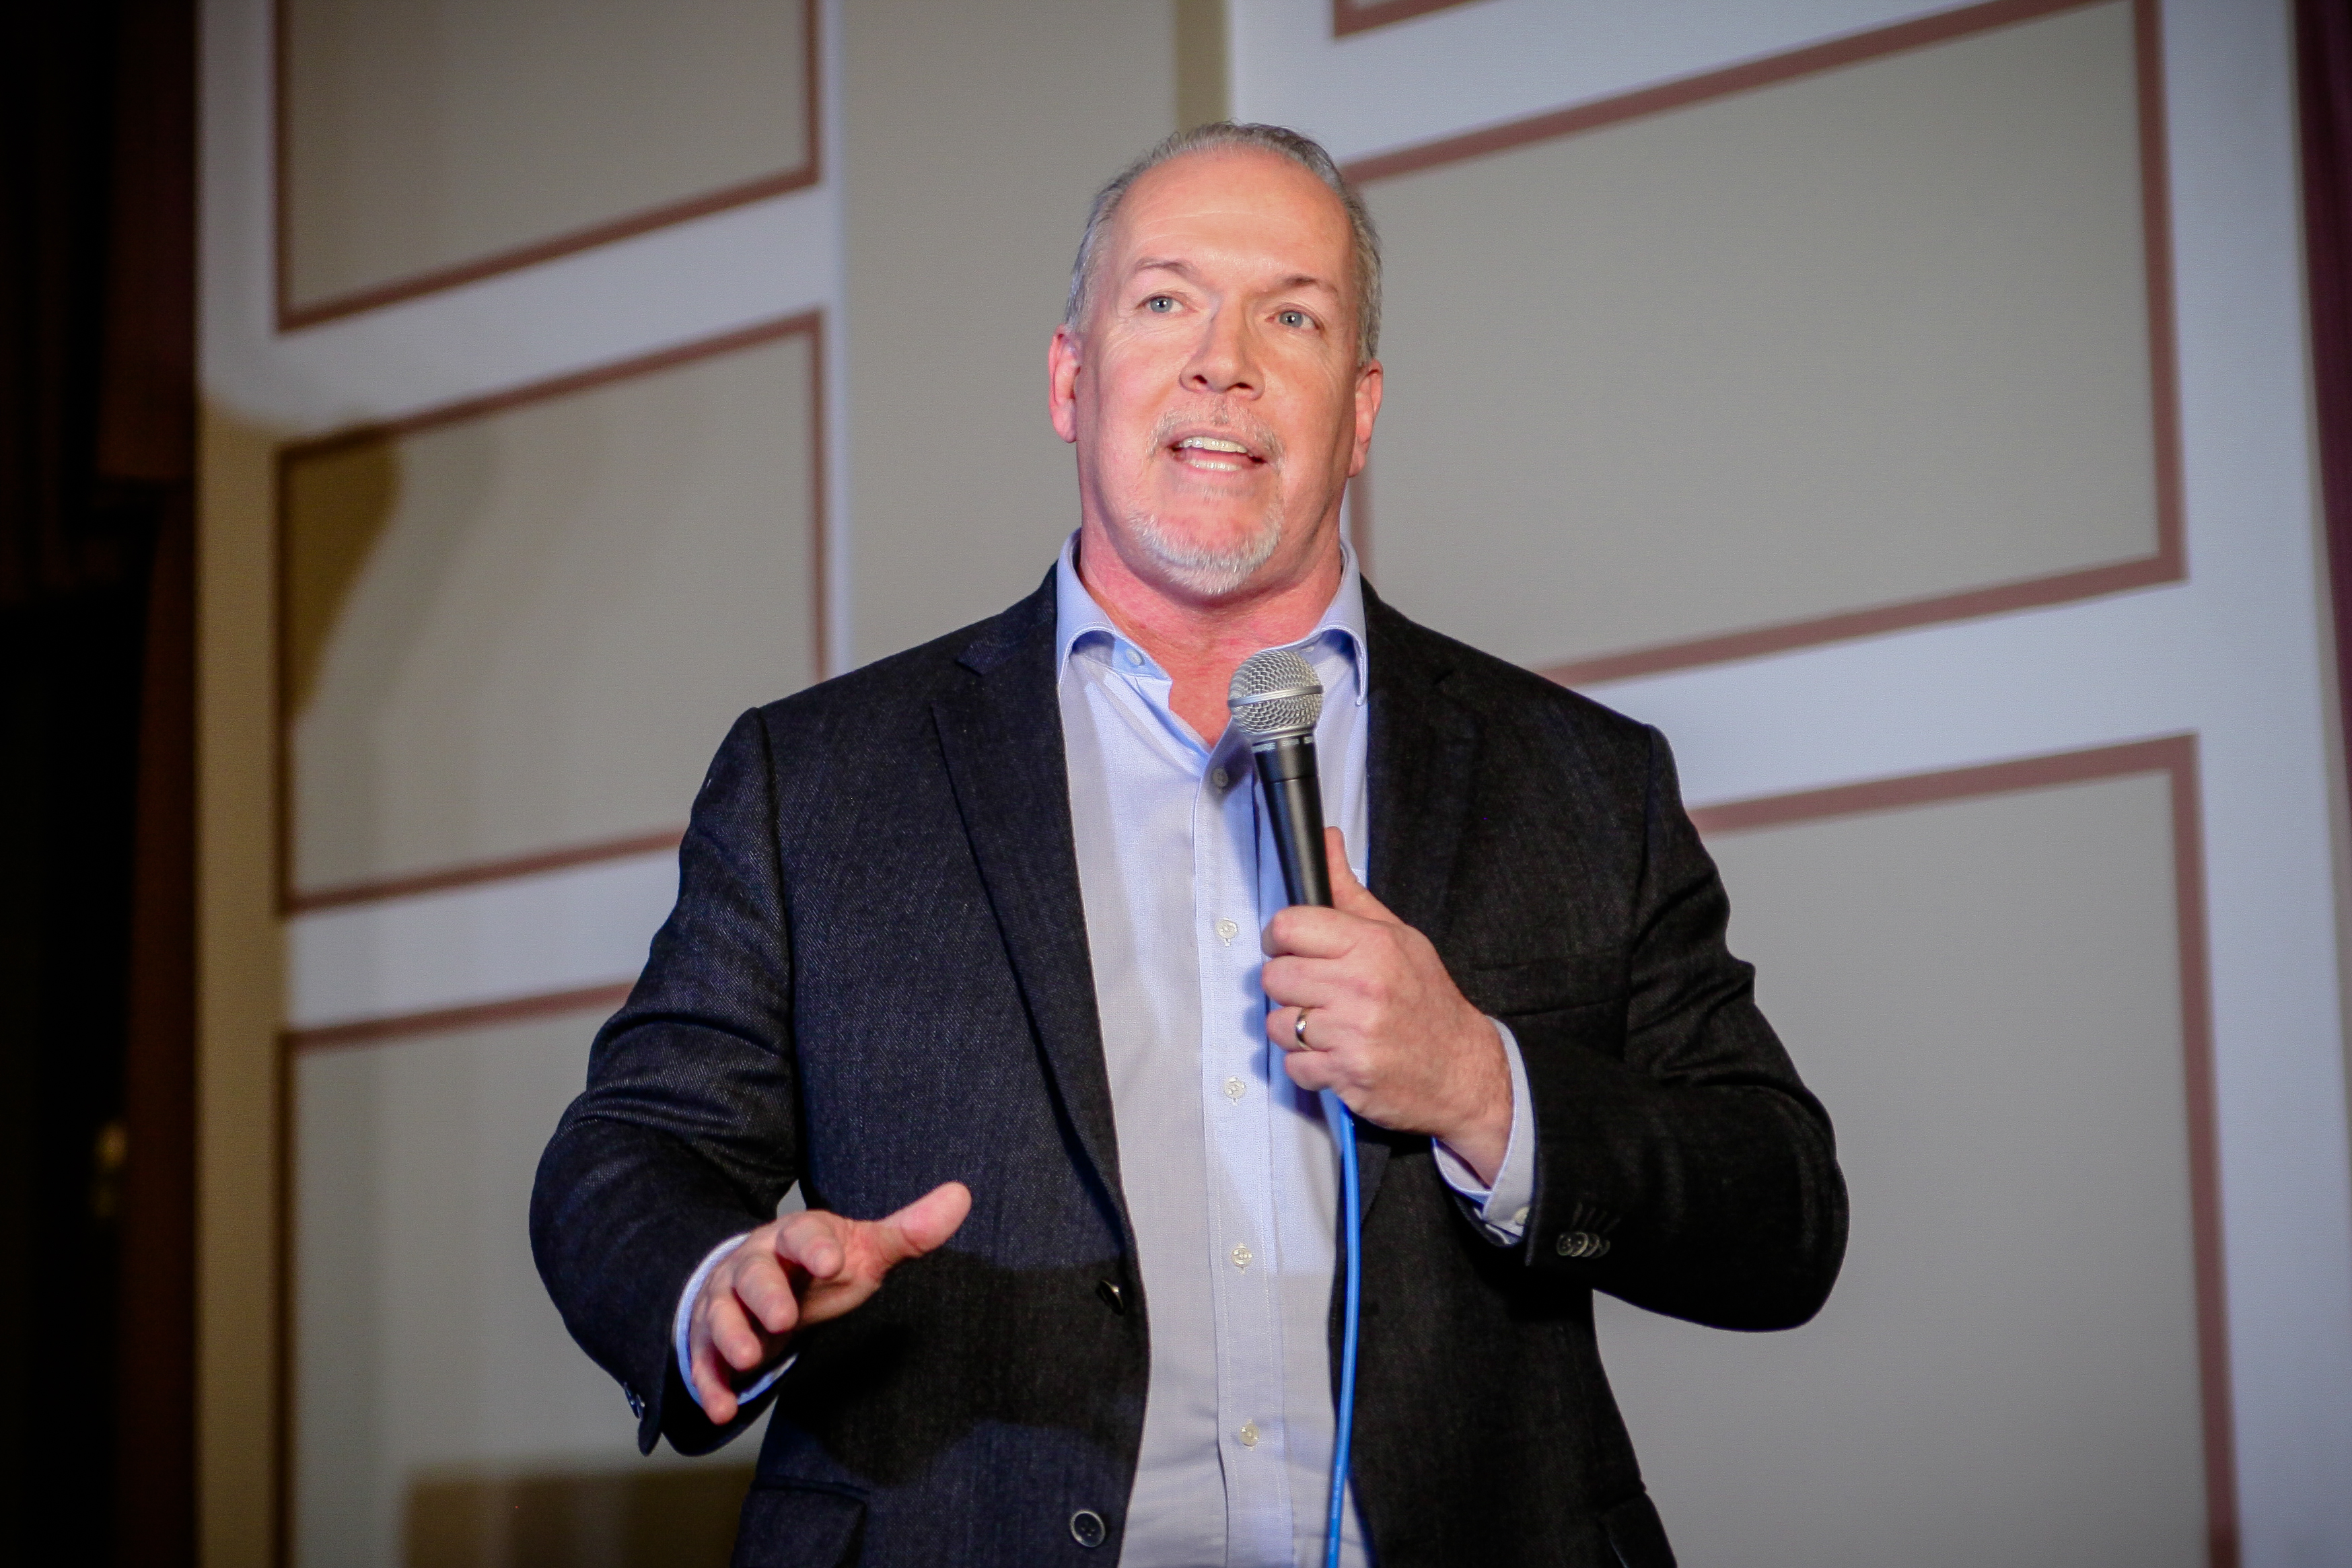 Ndp S John Horgan Unveils Climate Plan Would Put An End To Liberals Failure The Tyee